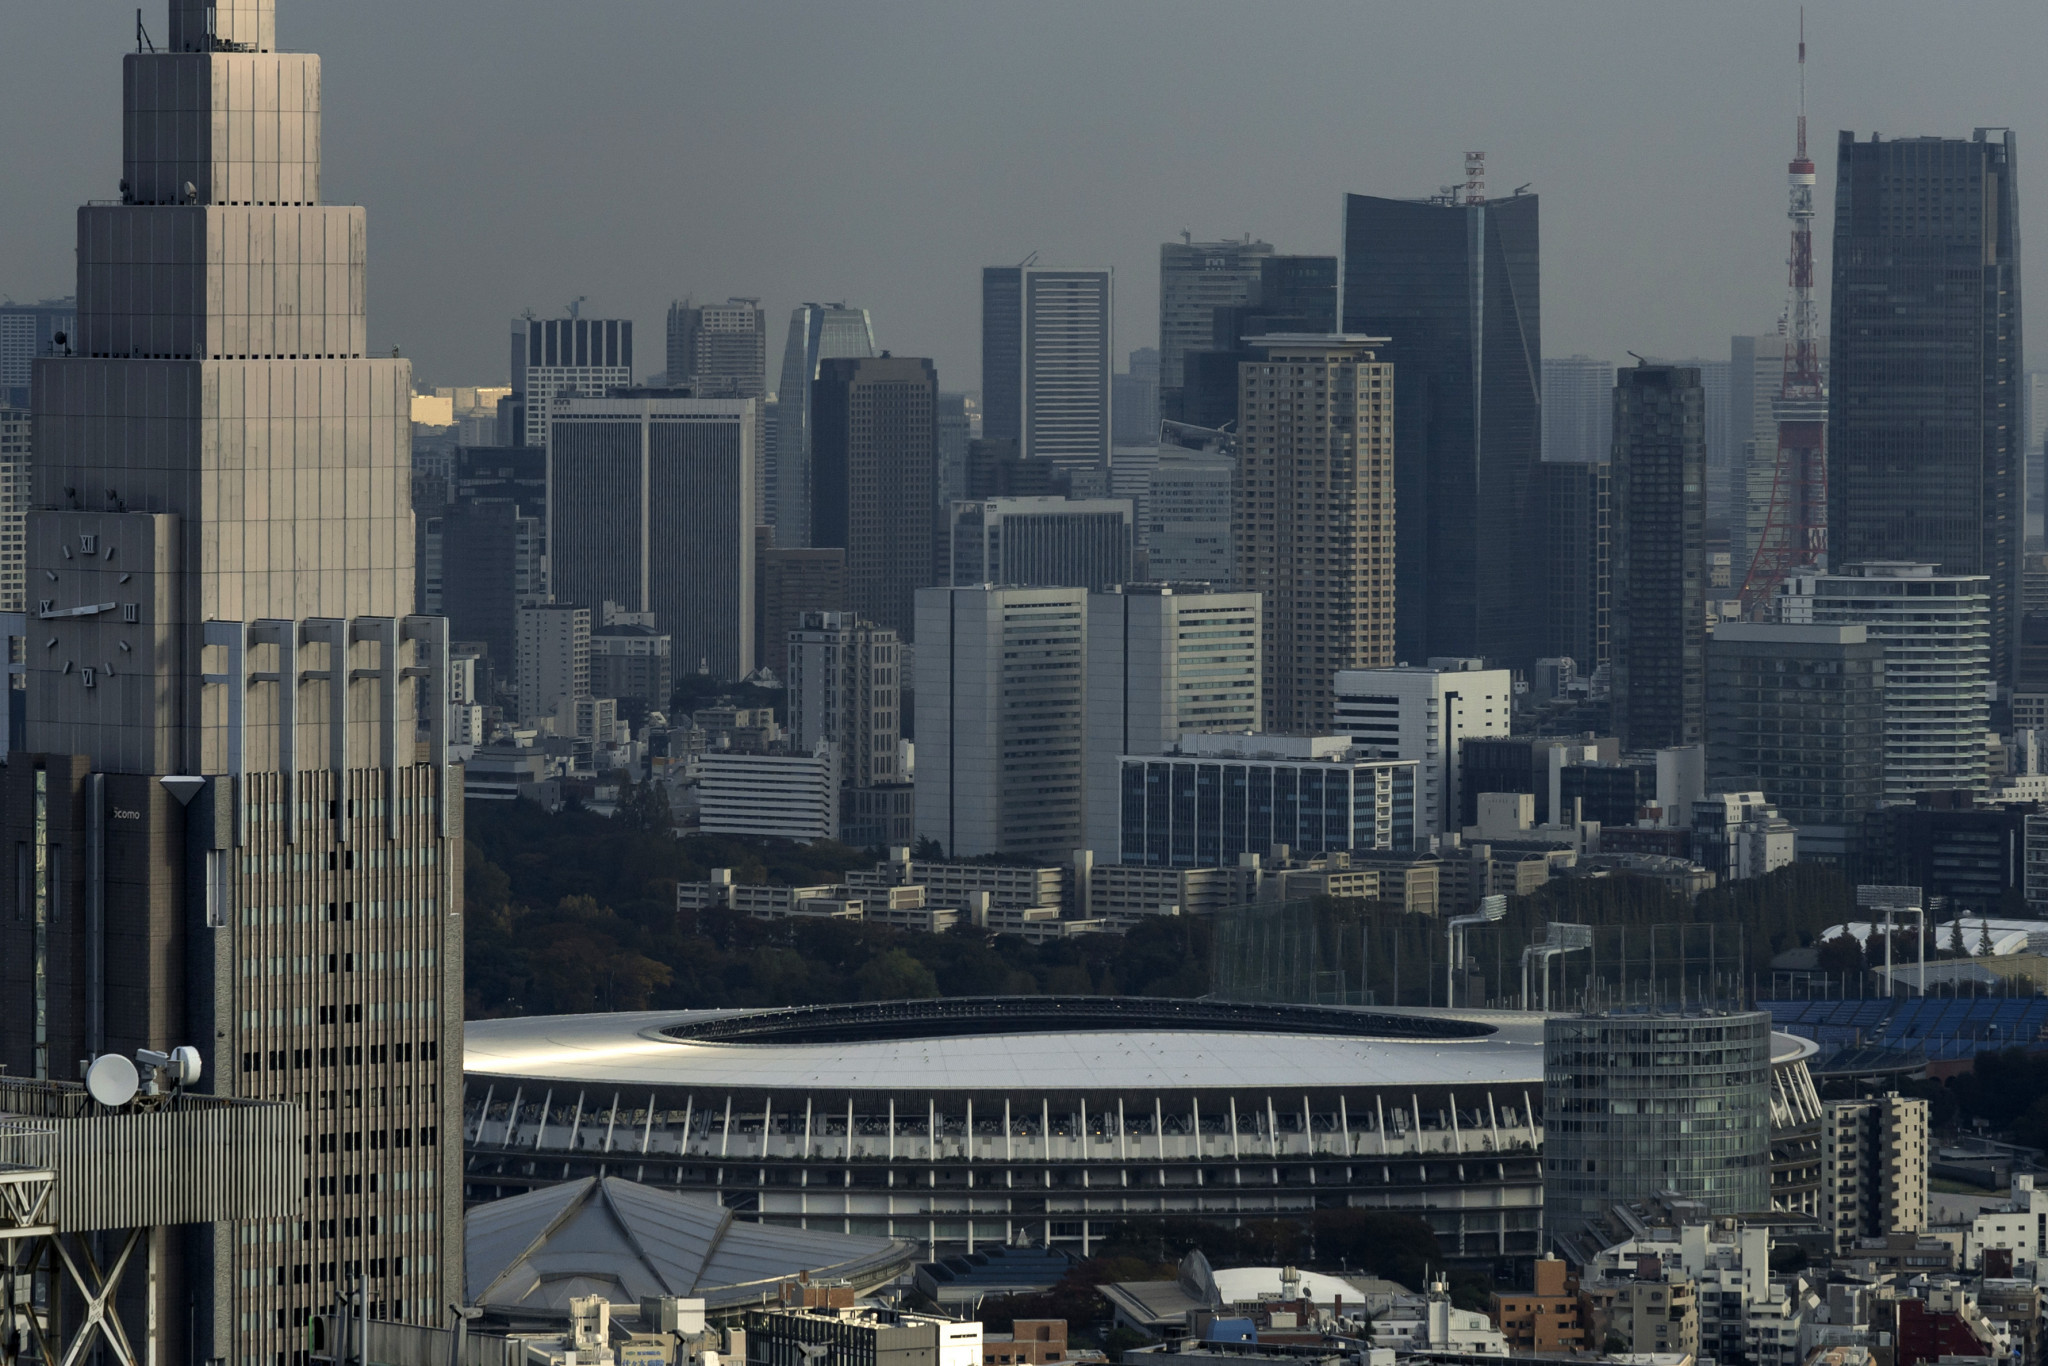 Tokyo 2020 have now secured 66 domestic partners prior to the Olympic and Paralympic Games ©Getty Images